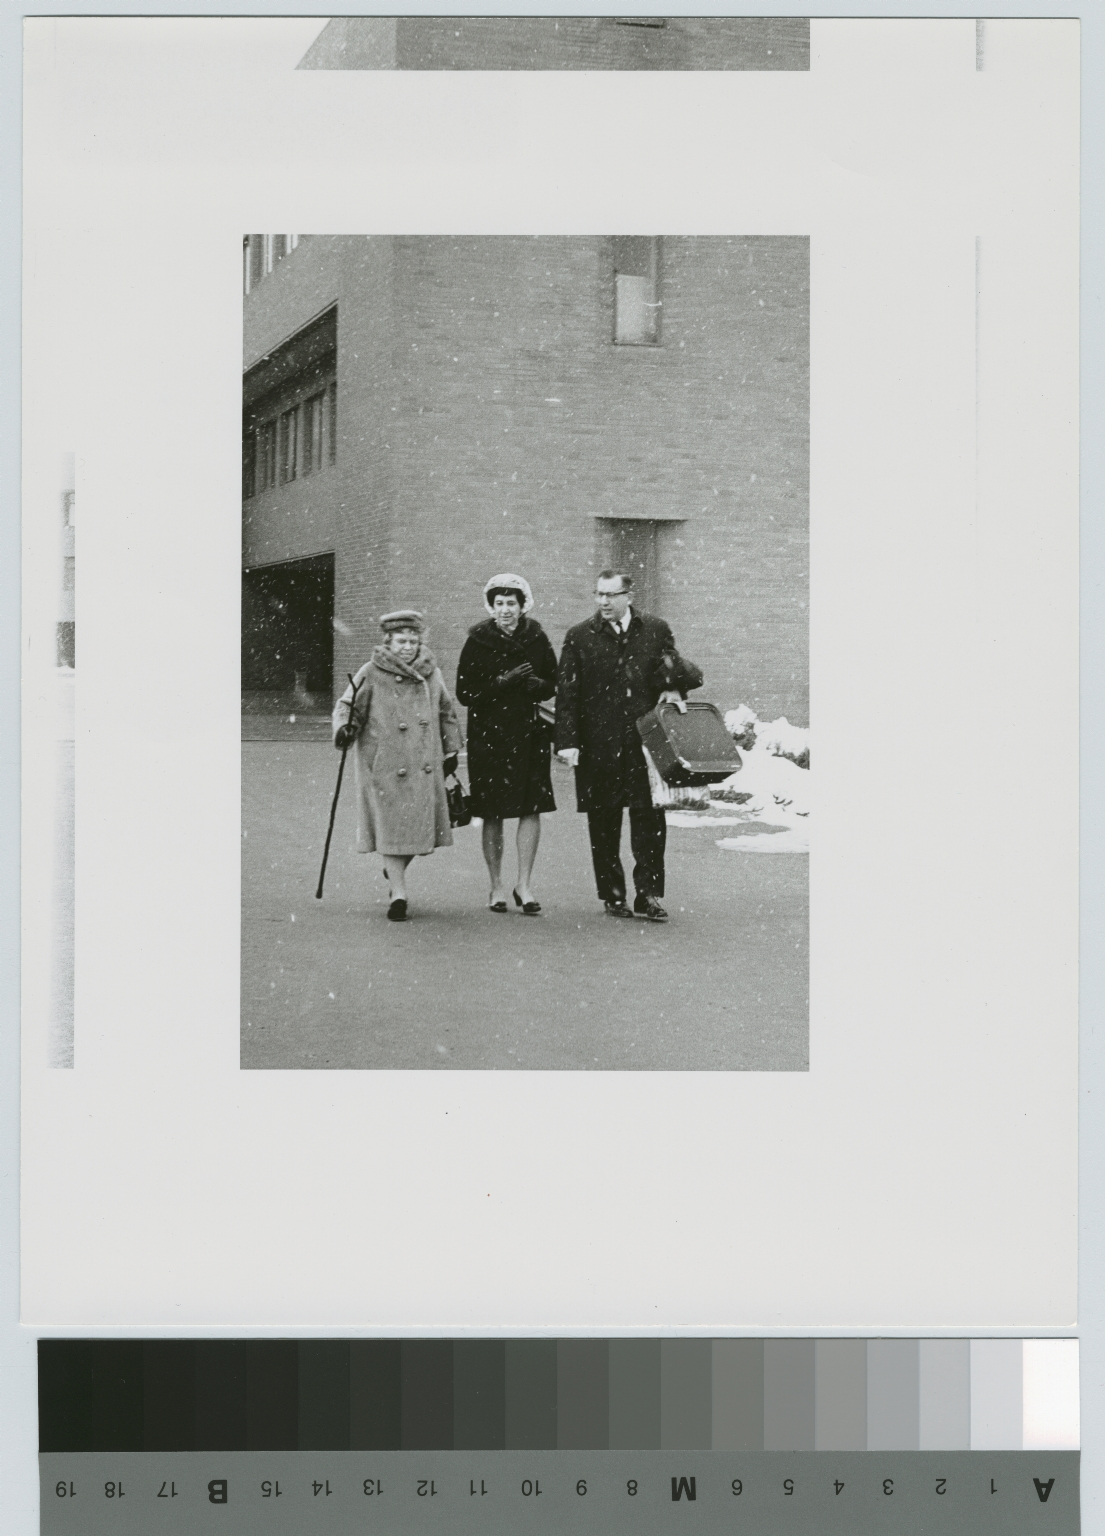 Dr. Margaret Mead with Dr. and Mrs. Paul Bernstein, Rochester Institute of Technology